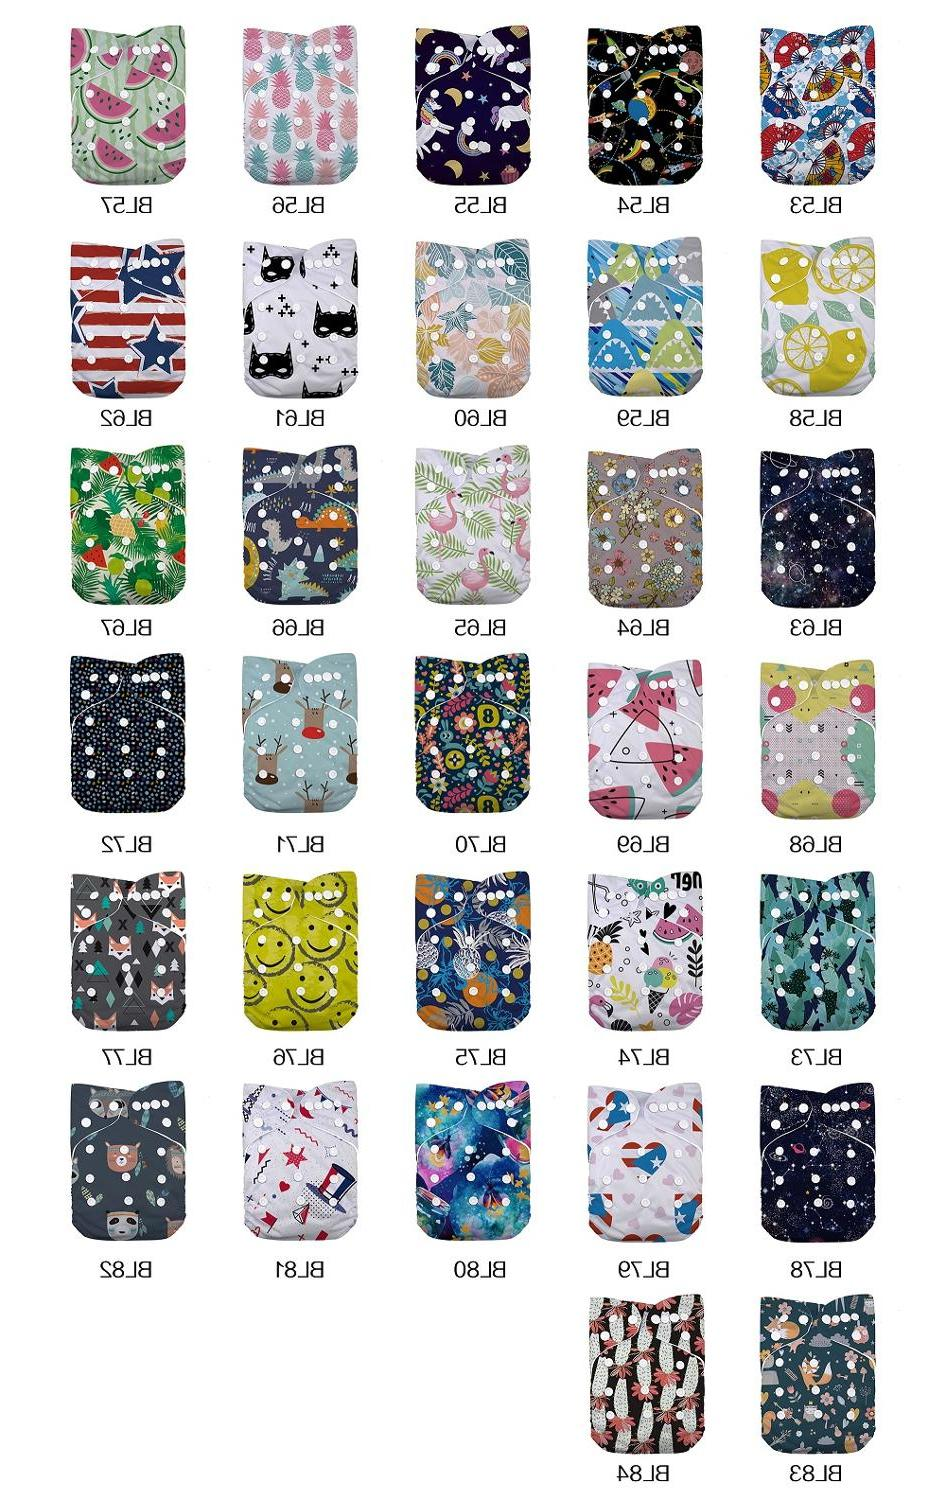 LilBit New Printed Design Washable Pocket Cloth <font><b>Diaper</b></font>